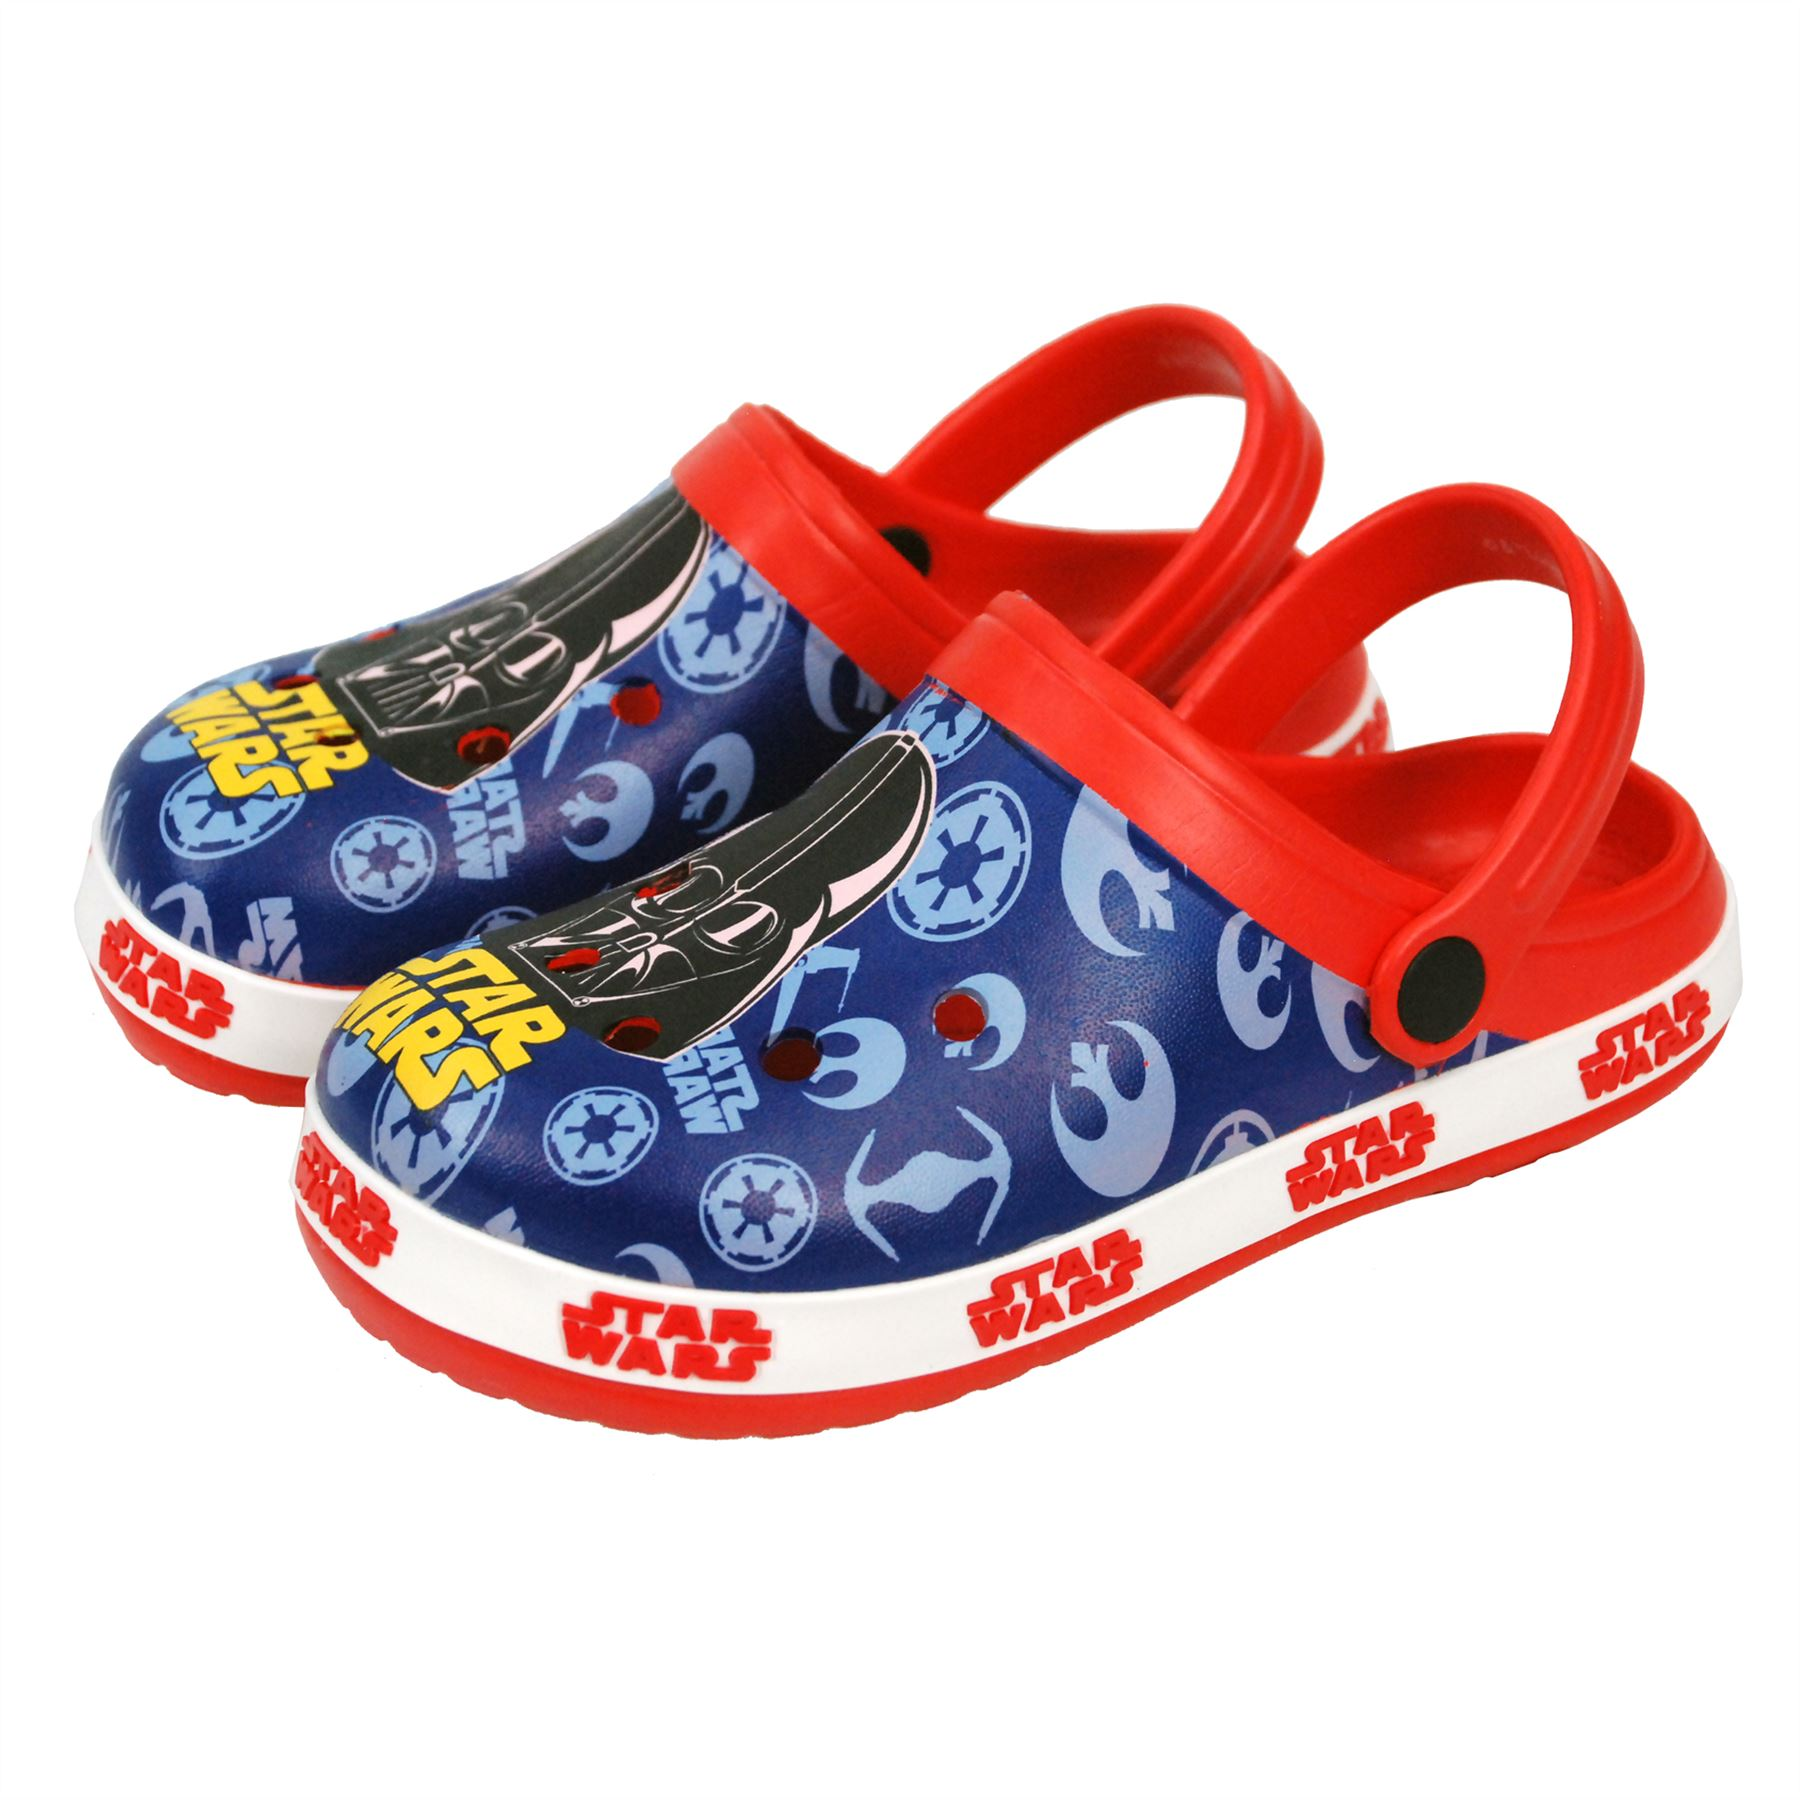 18mth - 9years Disney® Star Wars Boys Sandals Swimming Pool Slippers UK Sizes